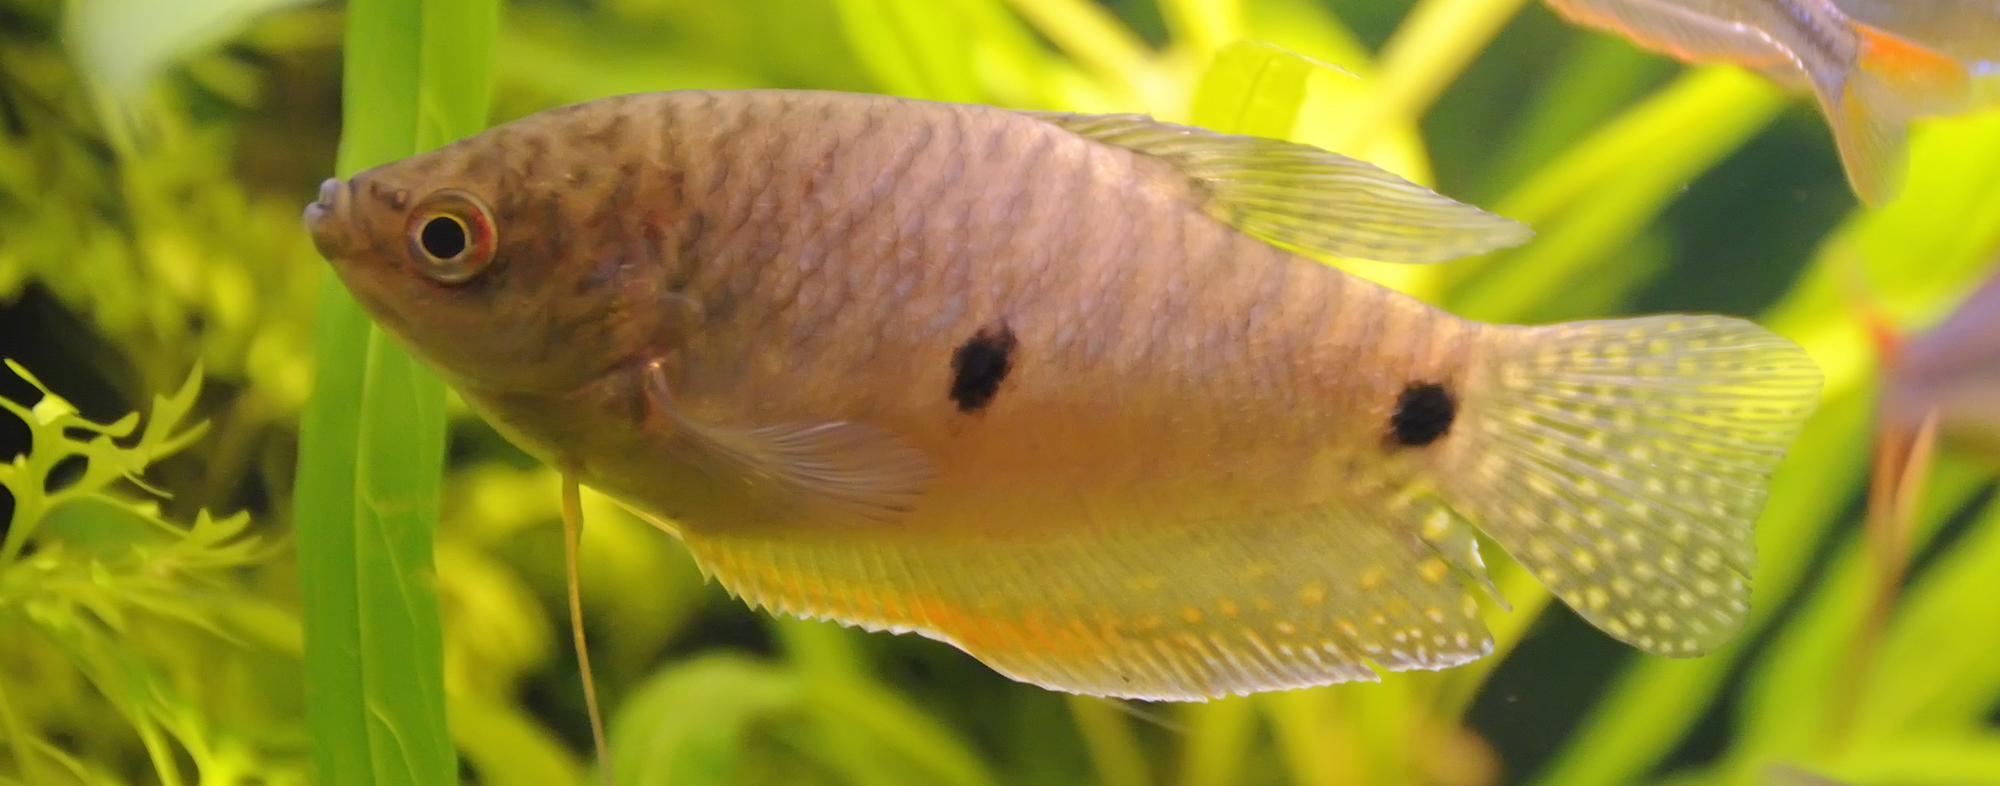 Well-maintained plants in your aquarium will make your fish happier